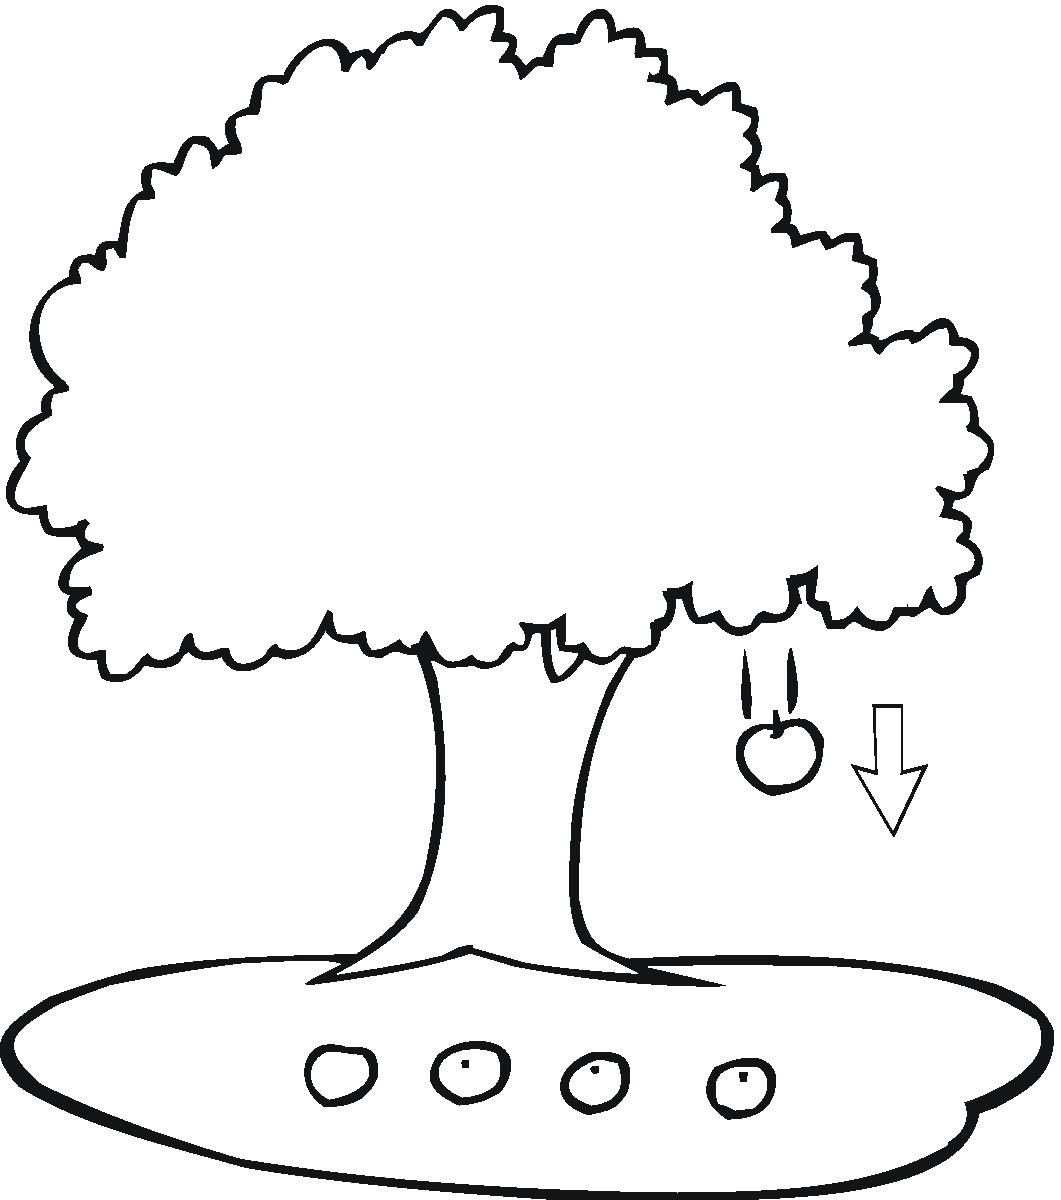 apple tree coloring pages - Apple Tree Coloring Page